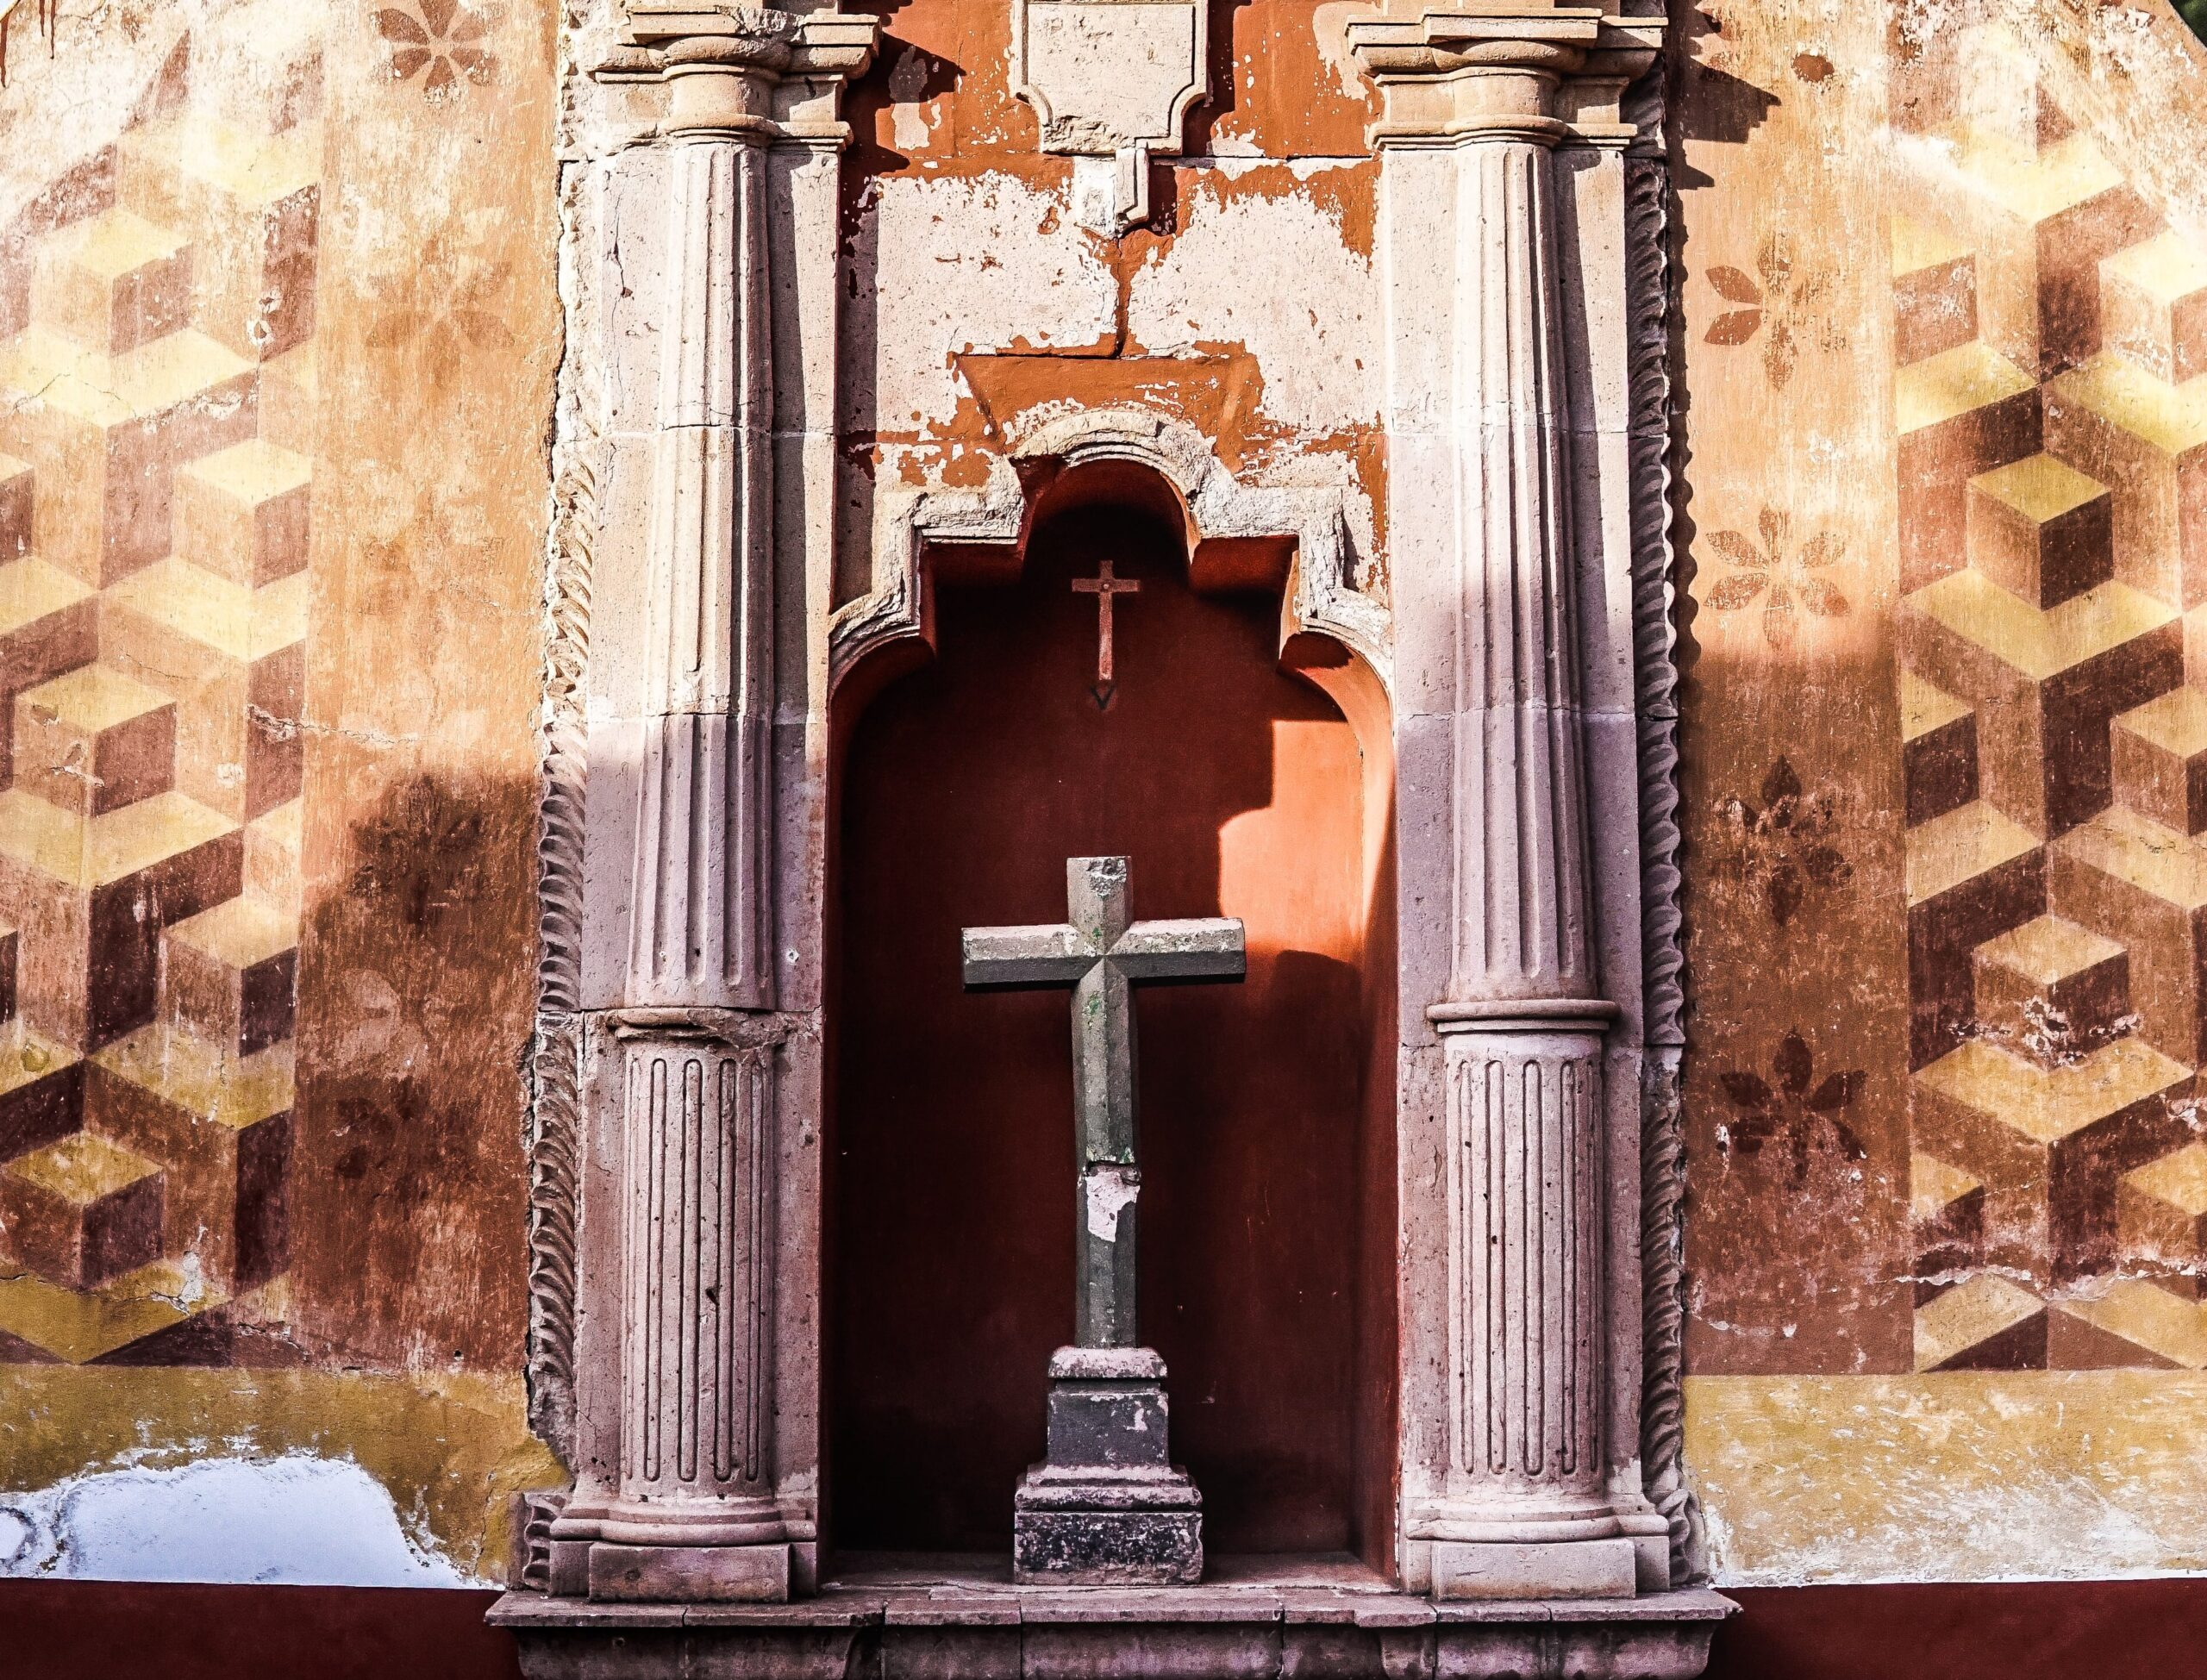 The Morisma Of Guadalupe: A Ritual Confrontation Between Moors And Christians